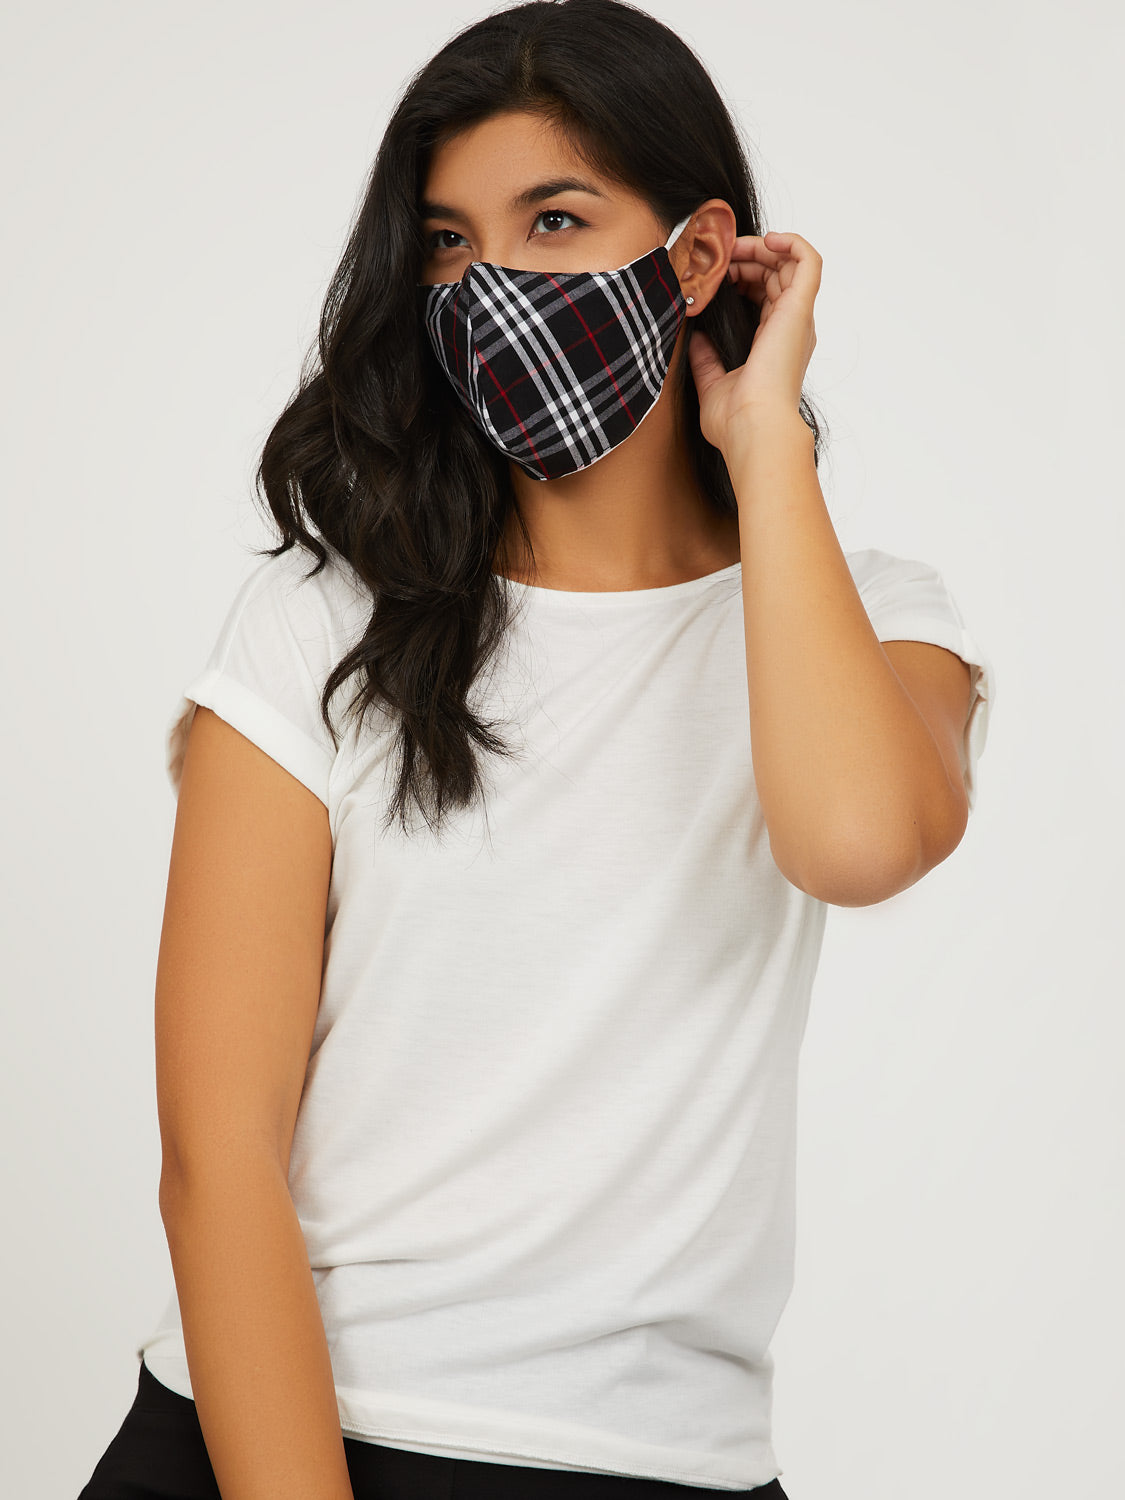 Reusable Cloth Face Masks With Filter Pocket (Pack of 2)